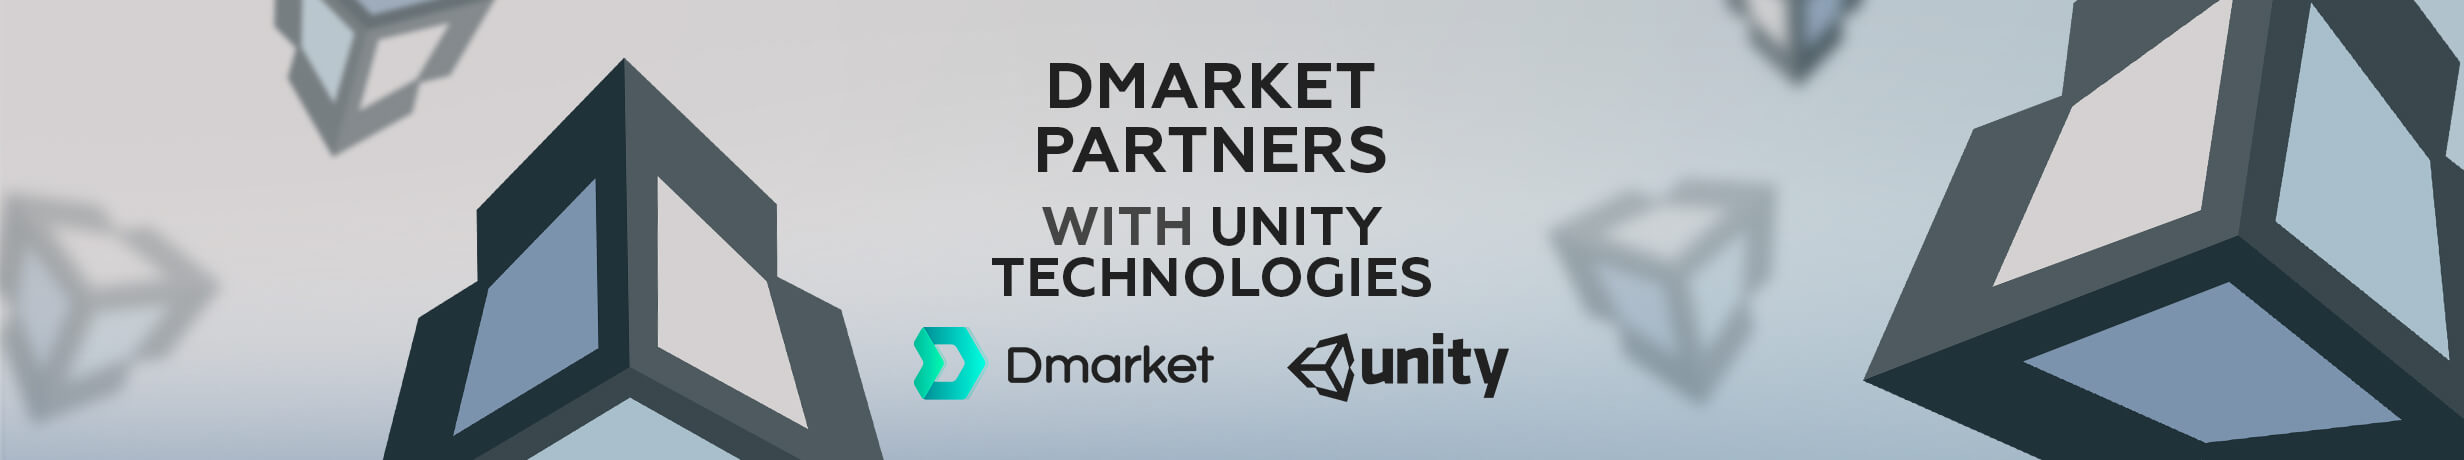 DMarket Partners with Unity Technologies